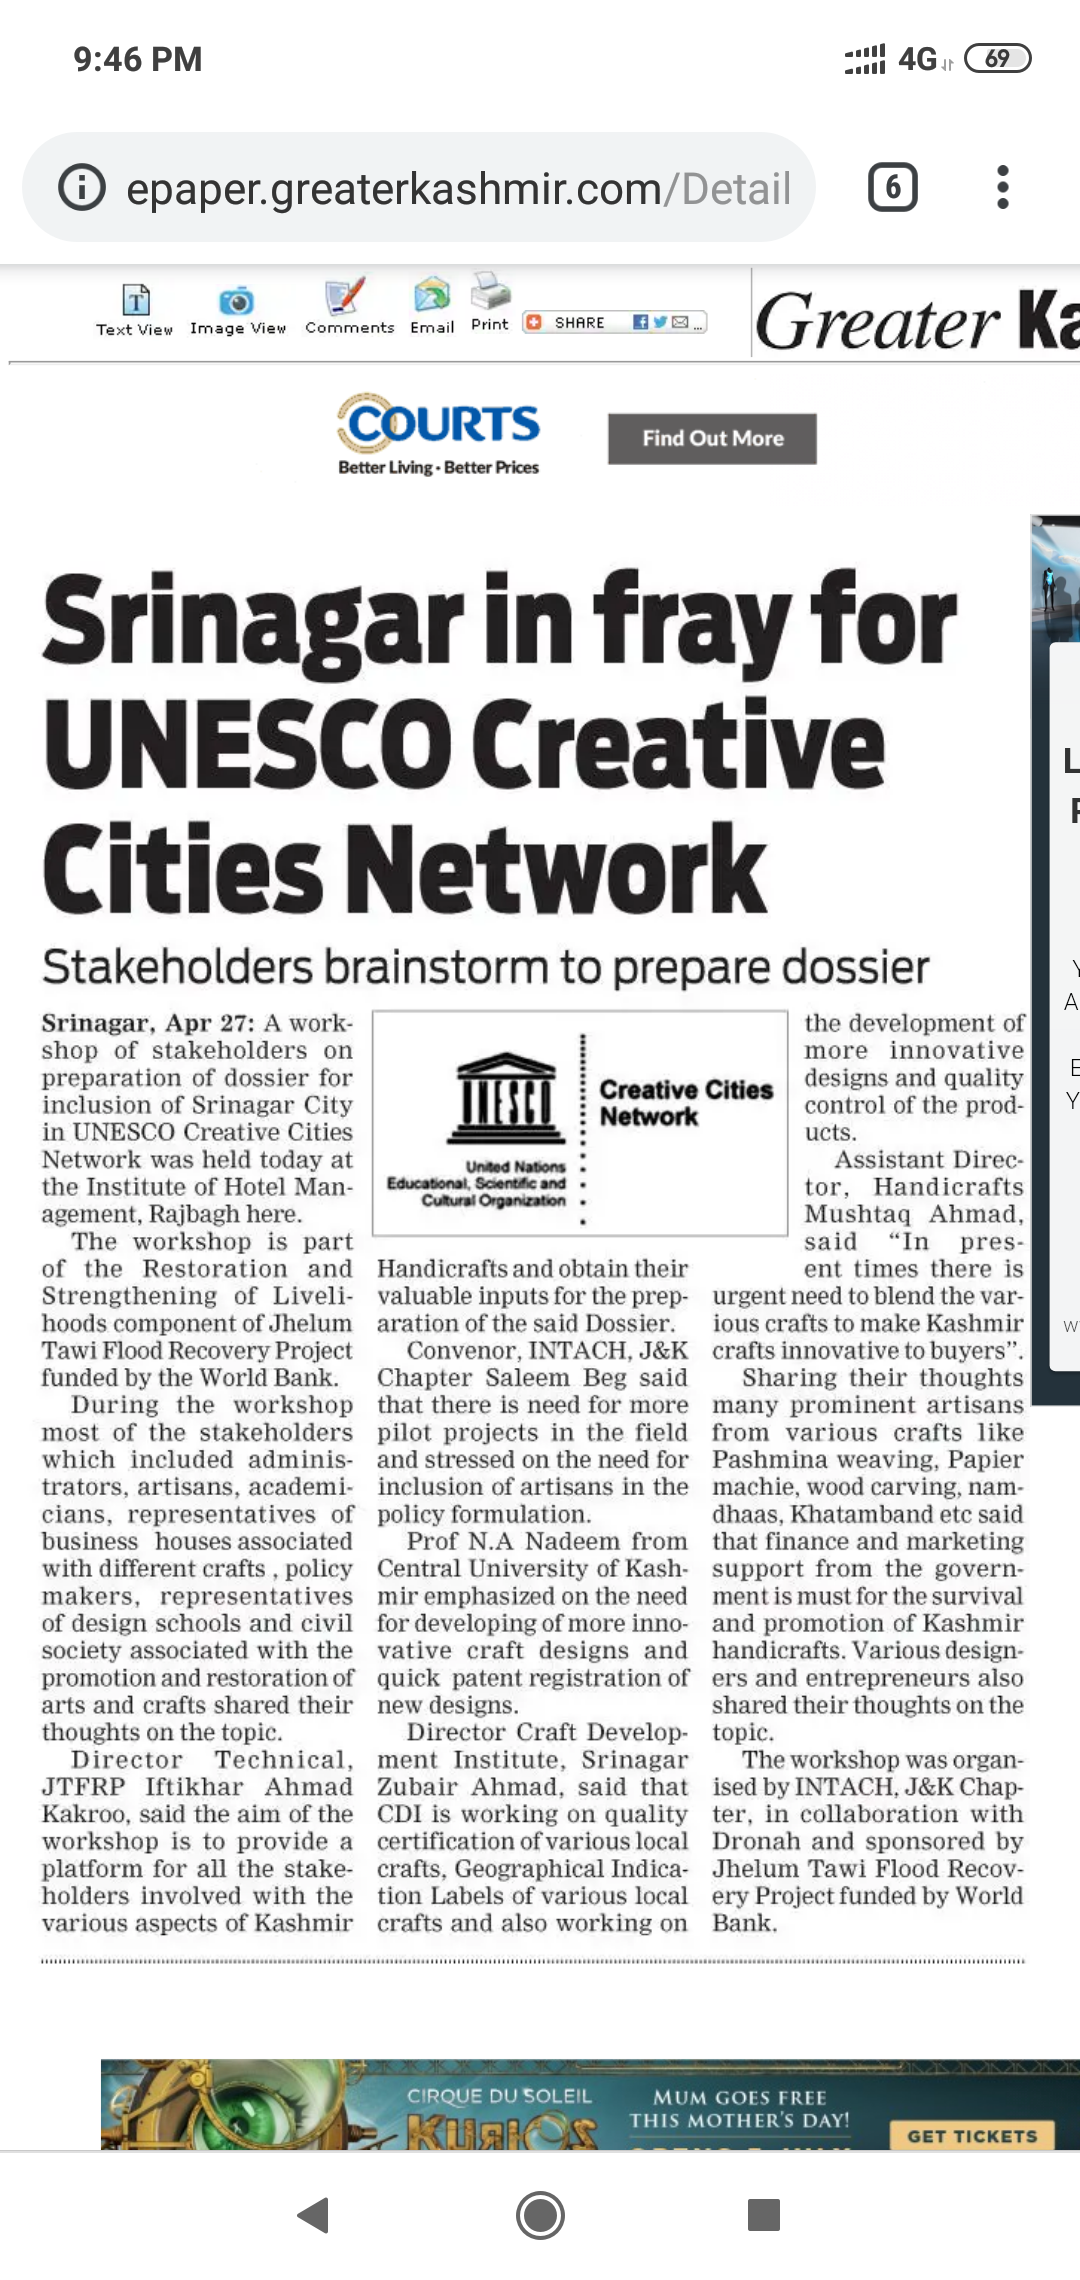 Srinagar in fray for UNESCO creative cities network |